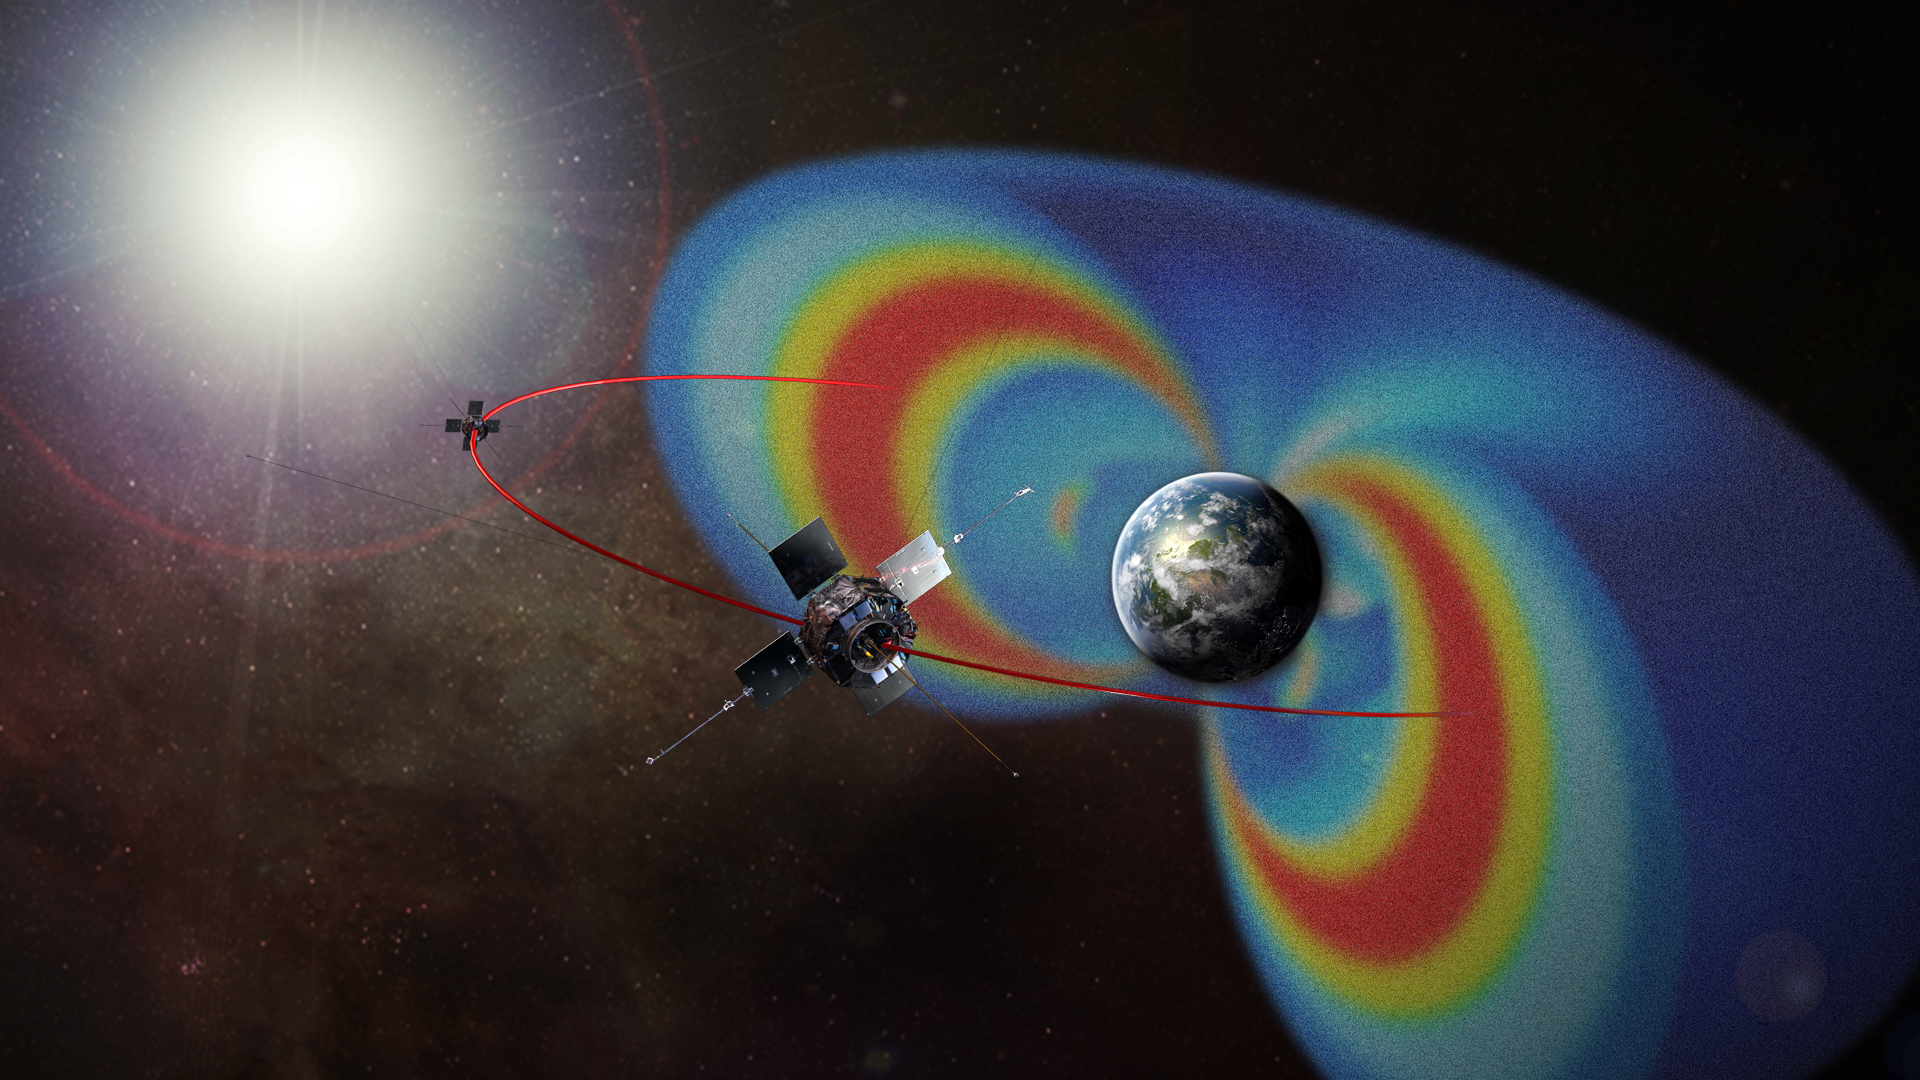 An illustration of the radiation belts around Earth.  The satellites depicted are the Van Allen Probes, launched in 2012 to study the belts (from NASA).